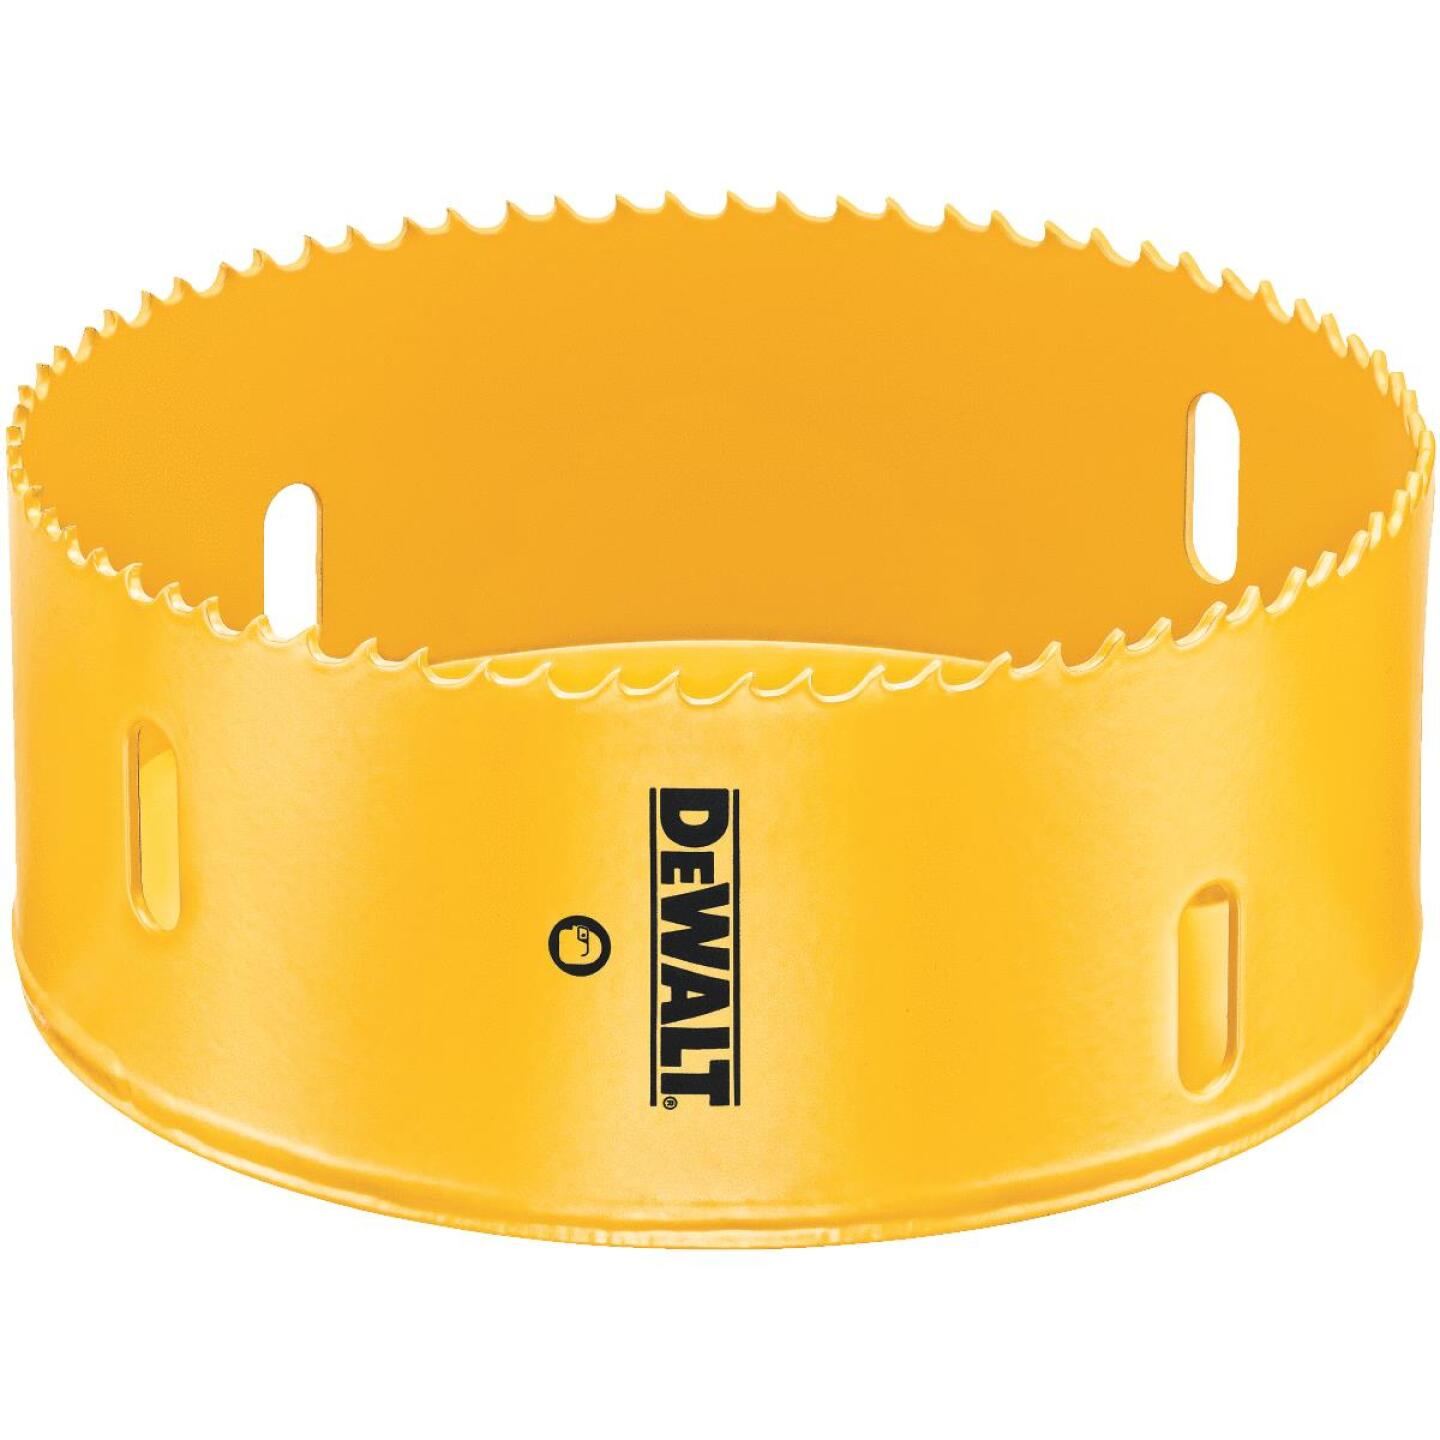 DeWalt 4 In. Bi-Metal Hole Saw Image 1